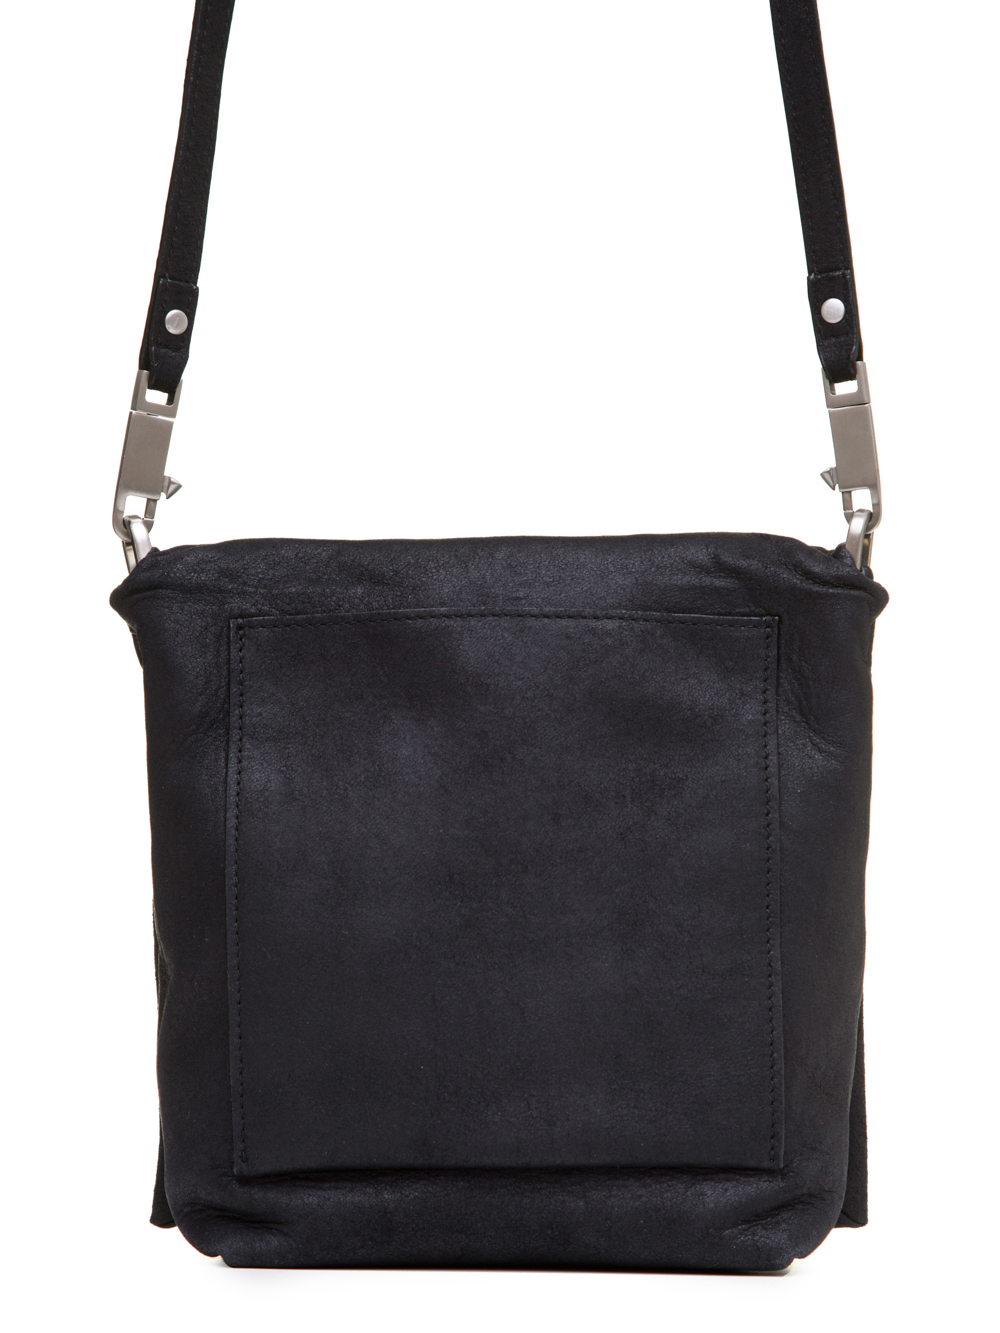 RICK OWENS SS19 BABEL SMALL FLAP ADRI BAG IN BLACK